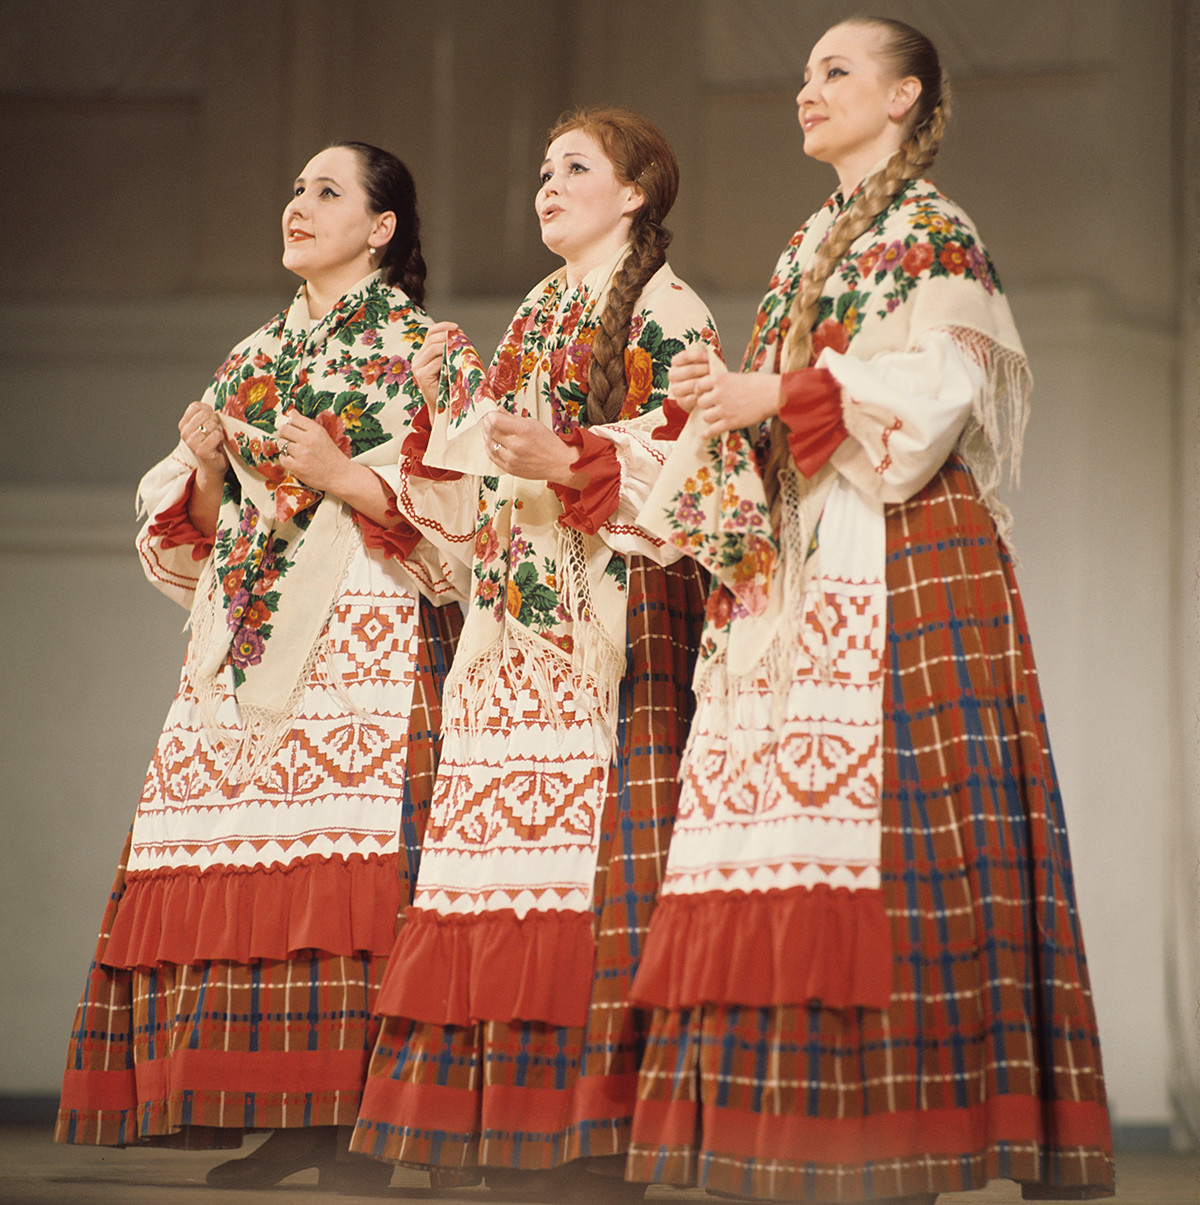 Chœur traditionnel russe, 1970